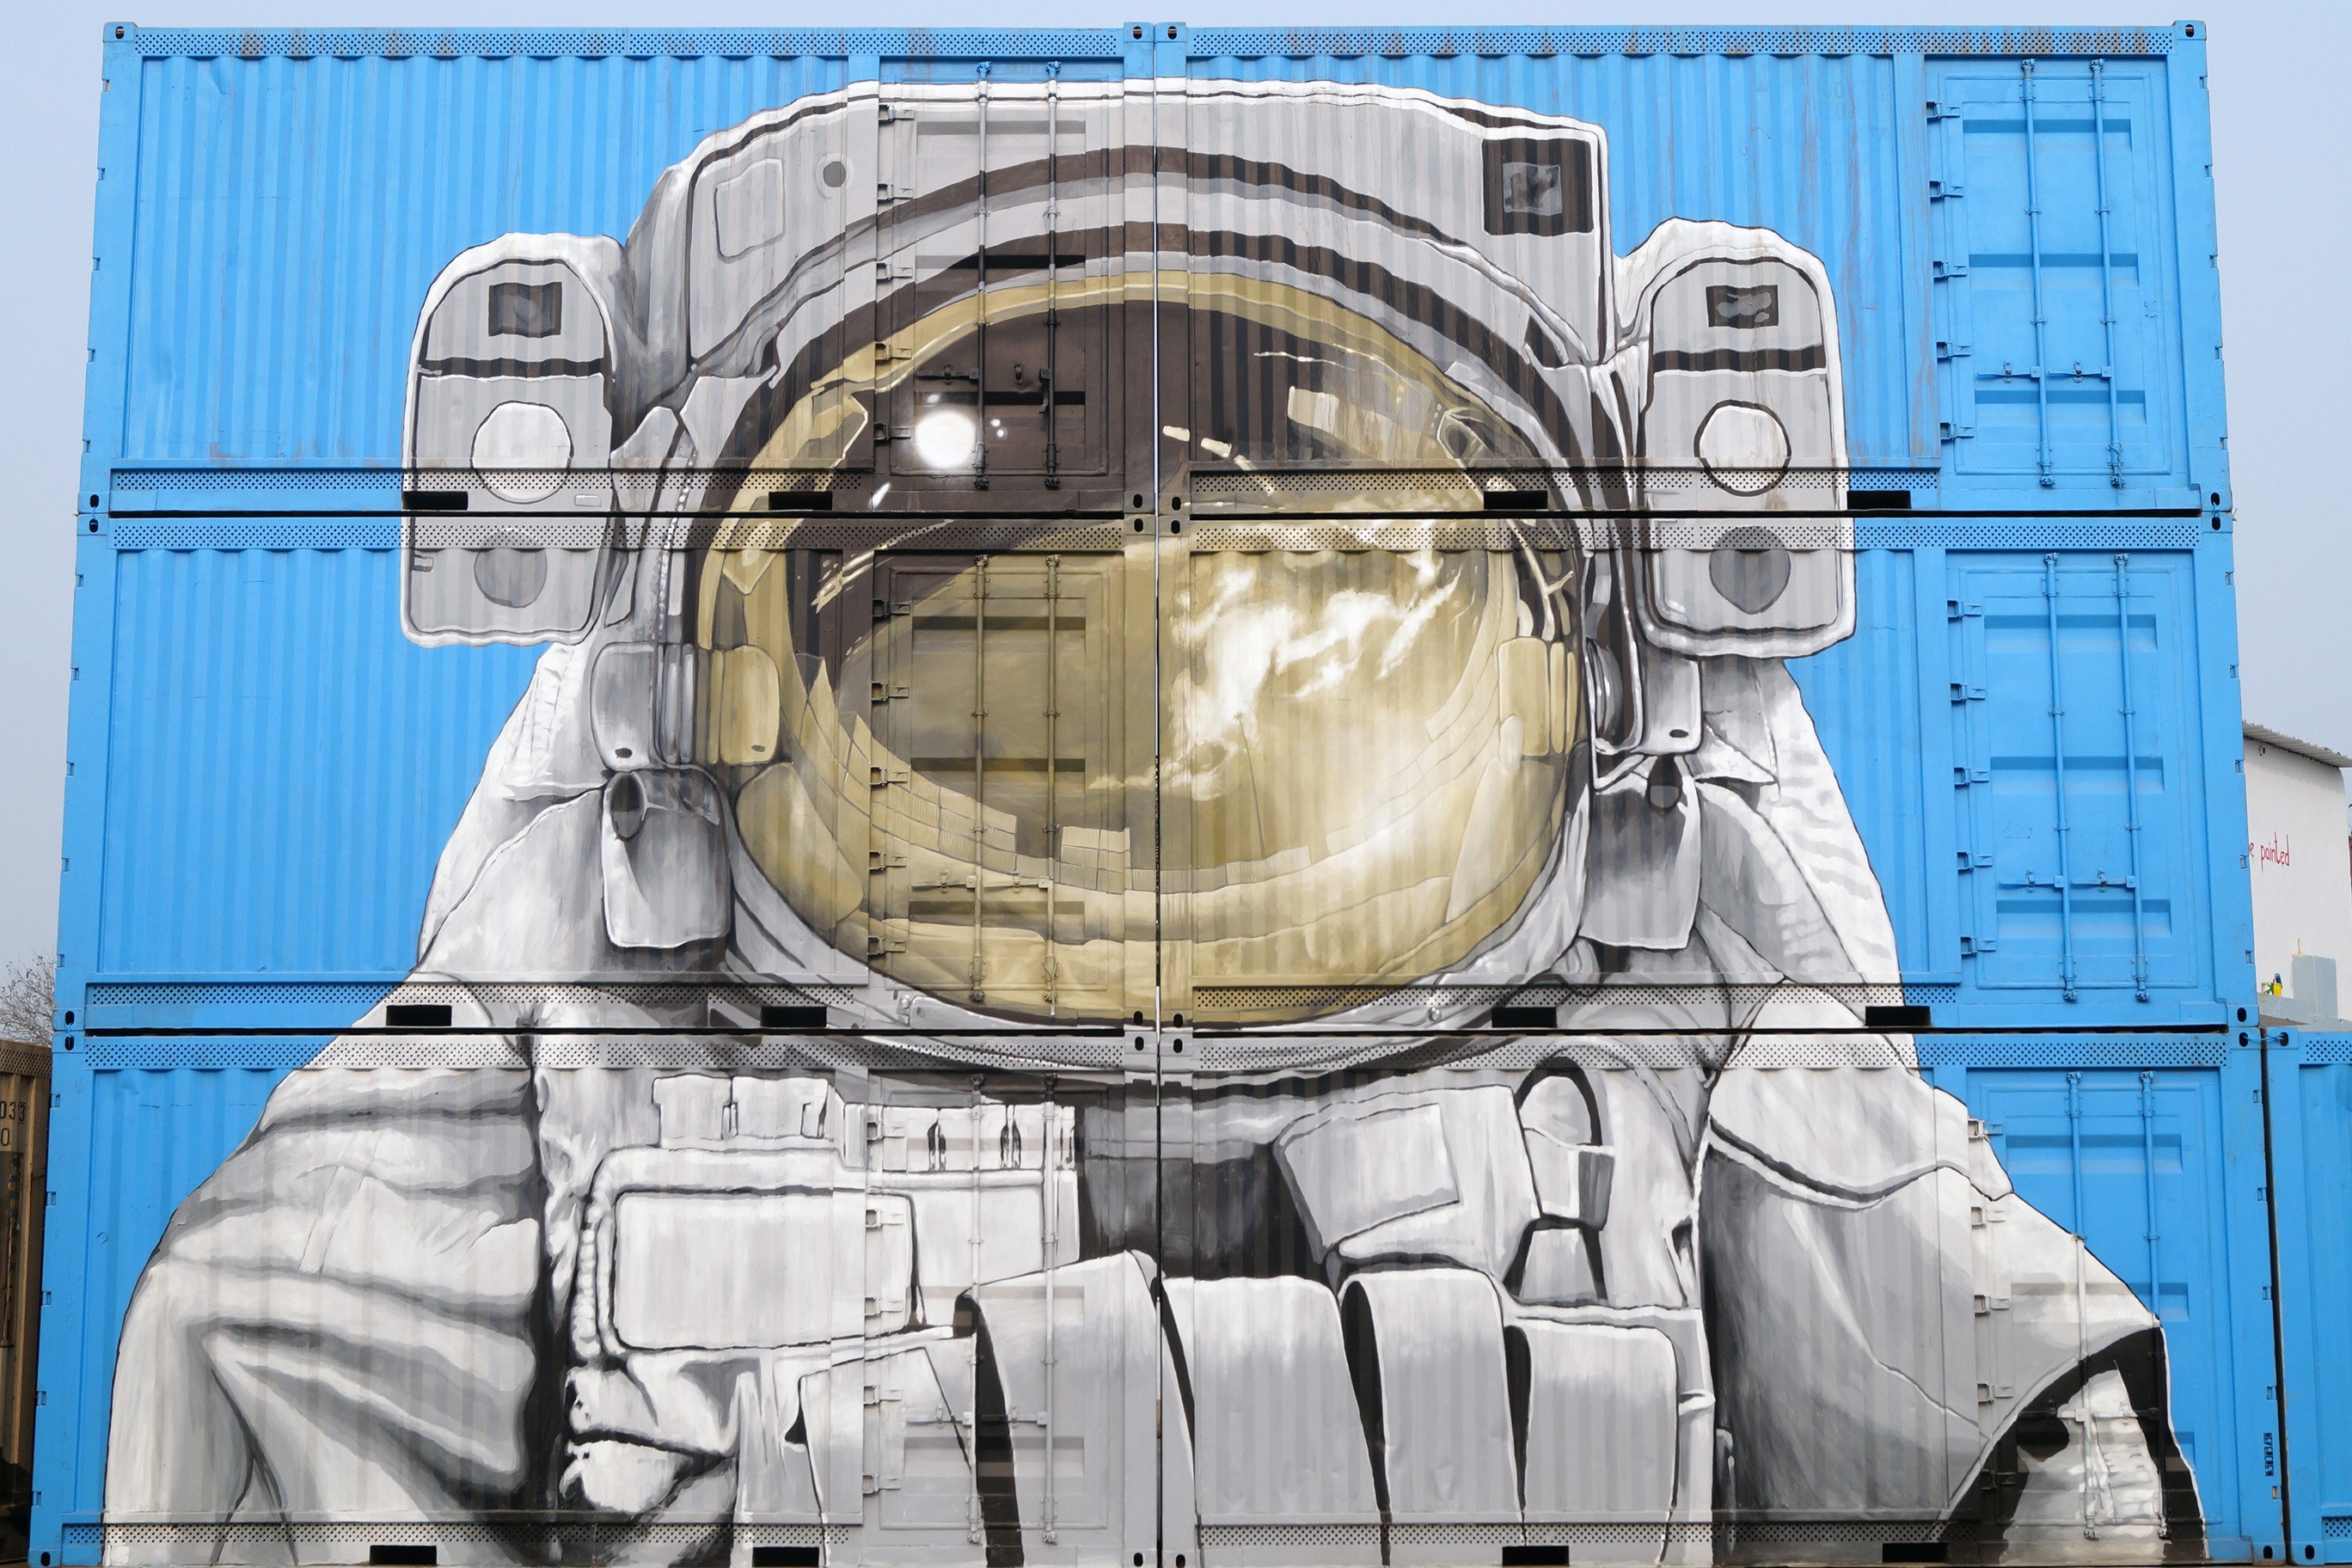 street-art-shipping-container-freight-highway-163811